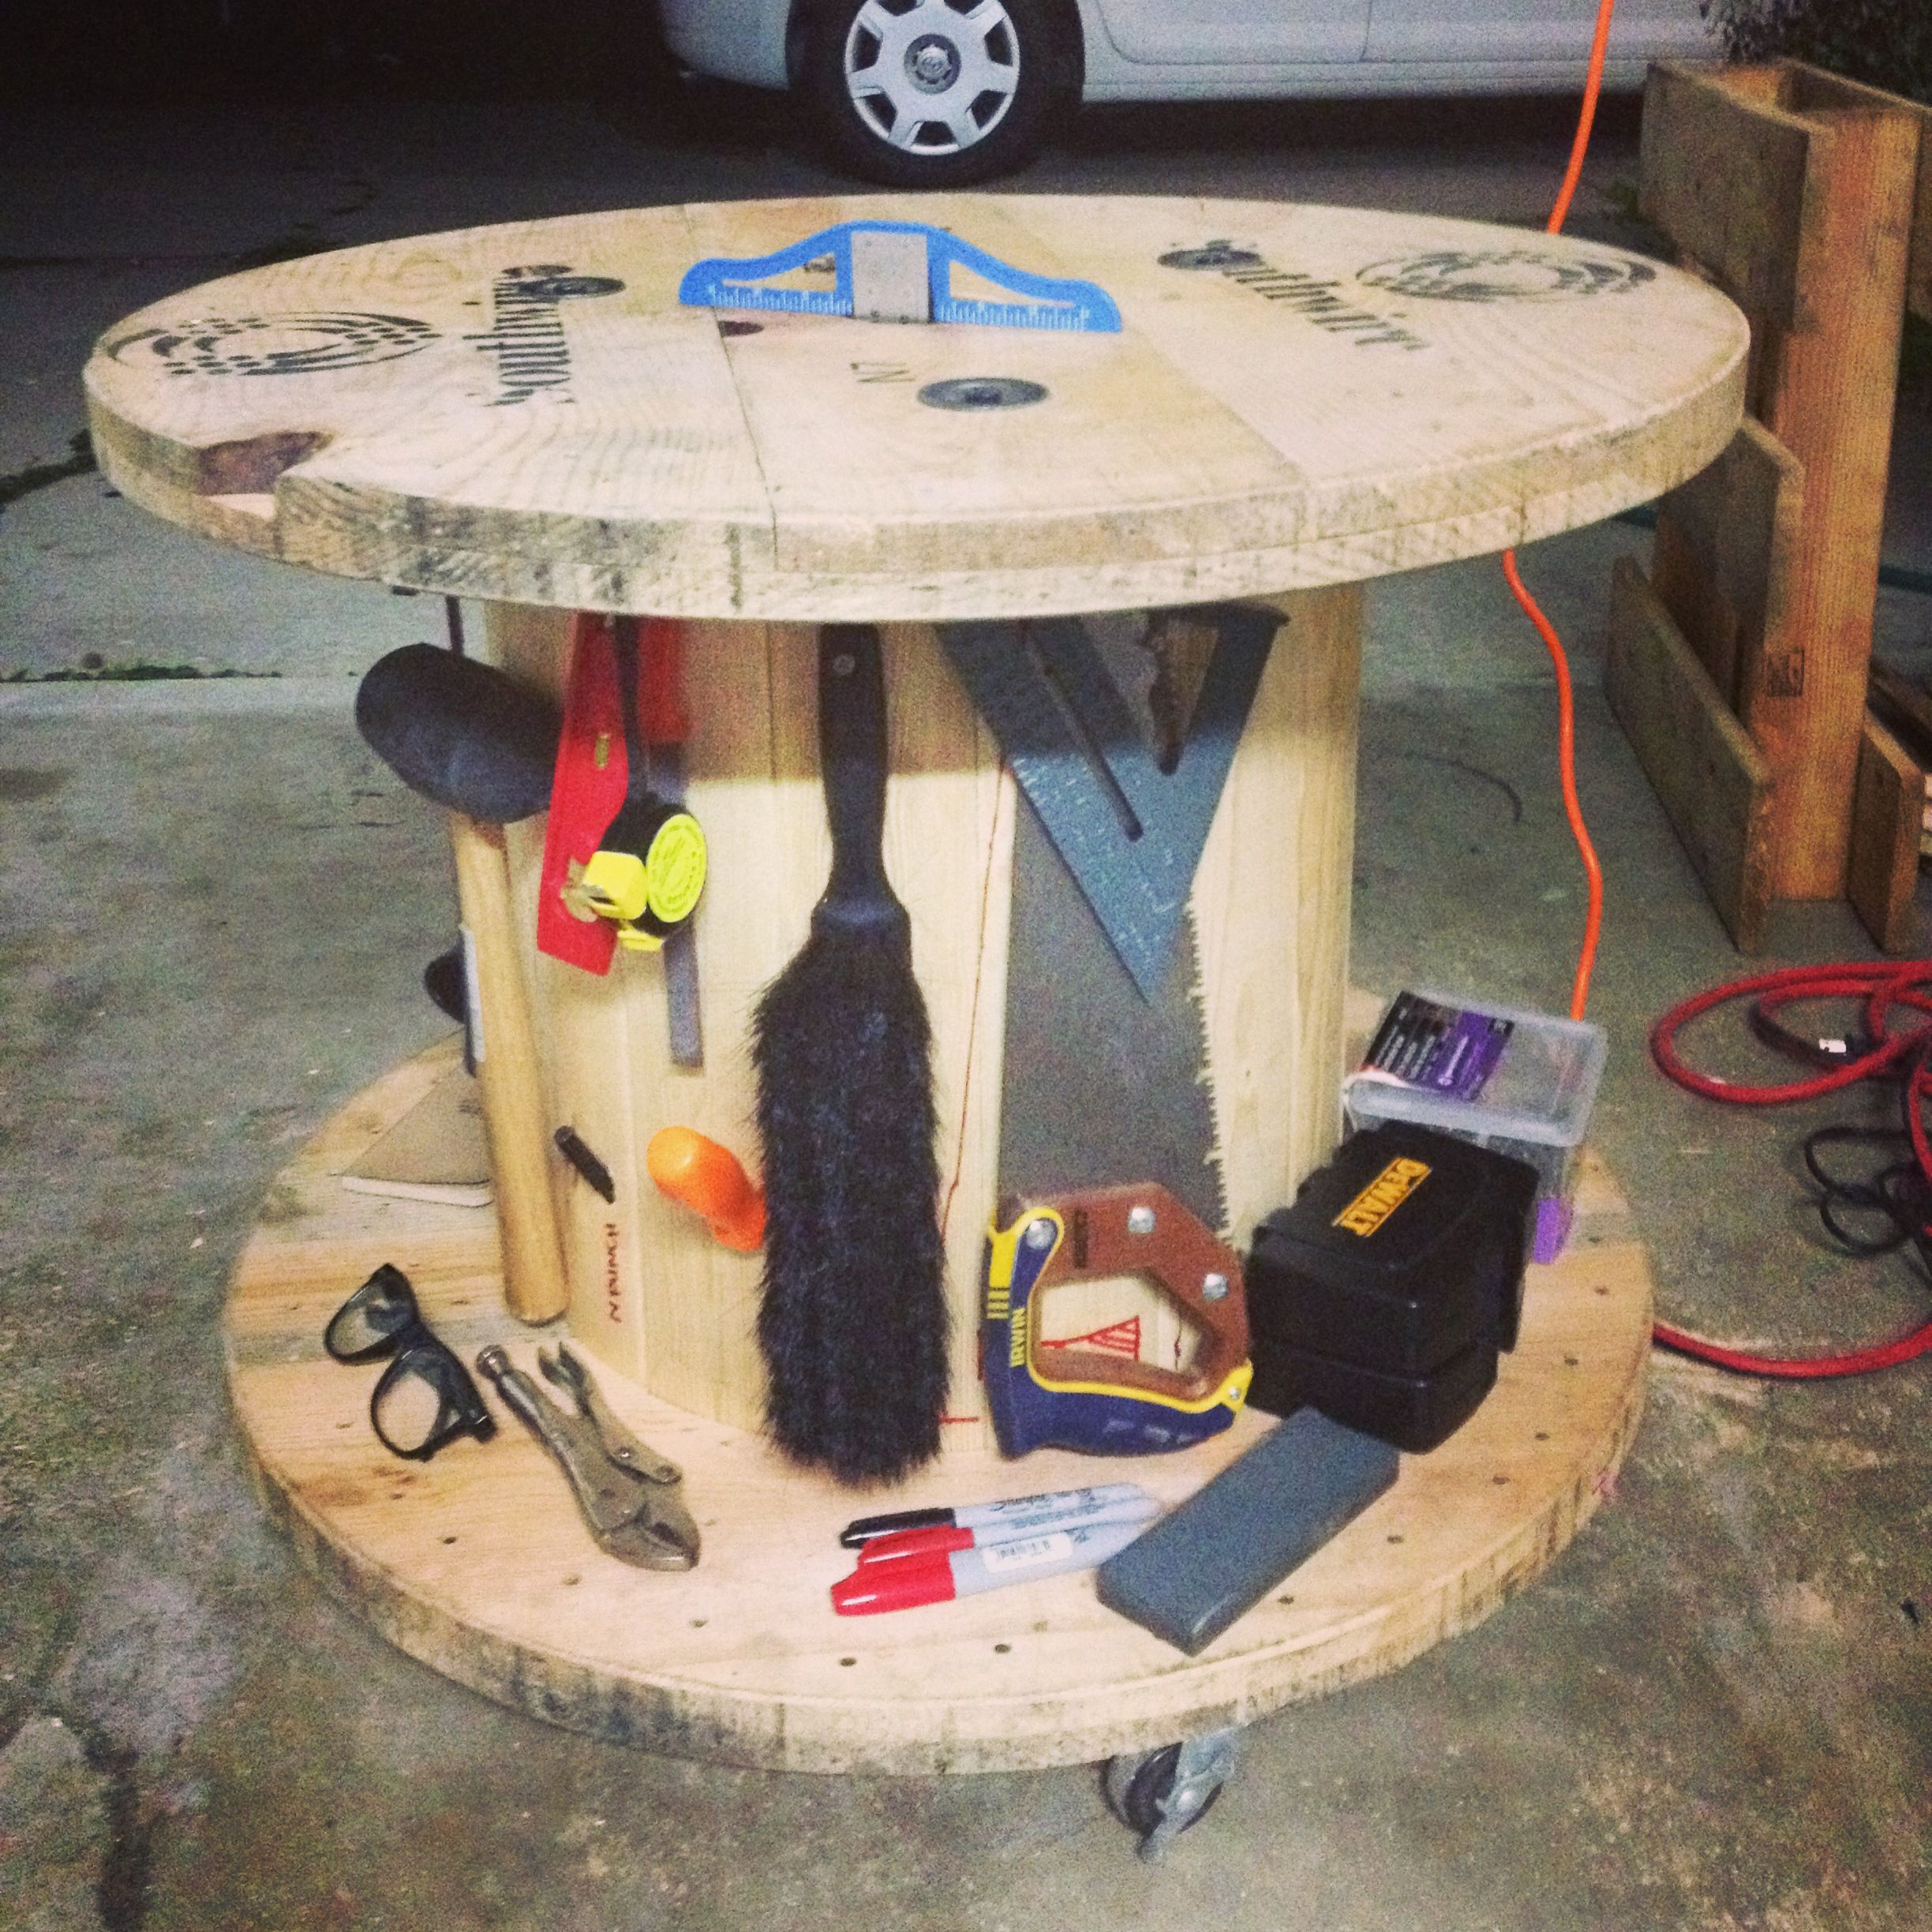 used cable spool, turned into a rolling tool cart and work bench ...